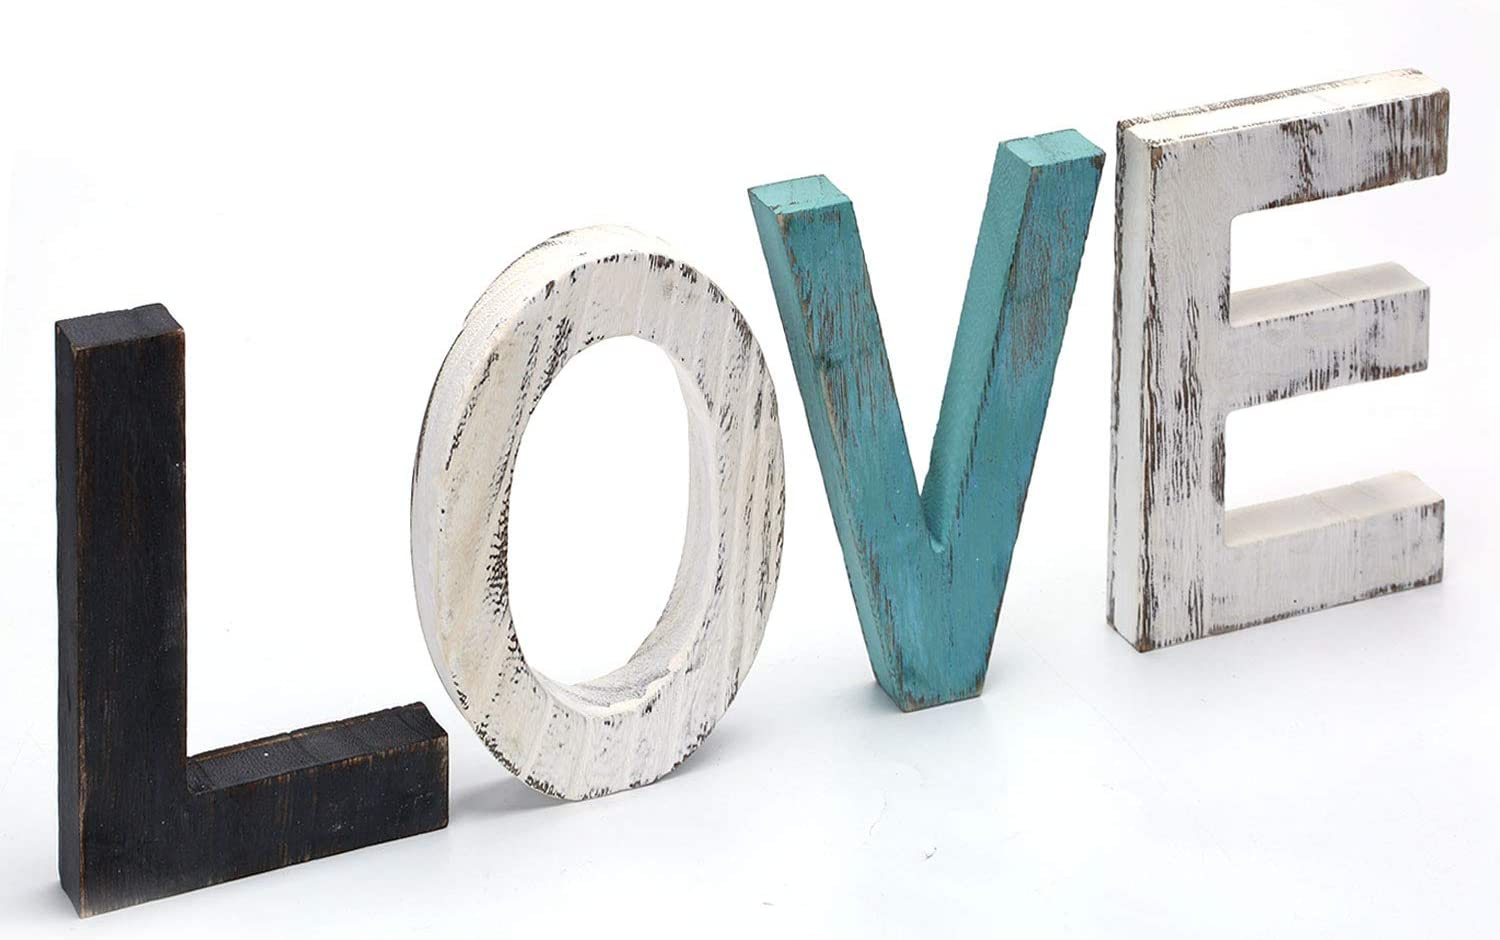 CuffUp Home Decor Love Sign, Wooden Letters Love Signs Wall Decor Rustic Turquoise Decor